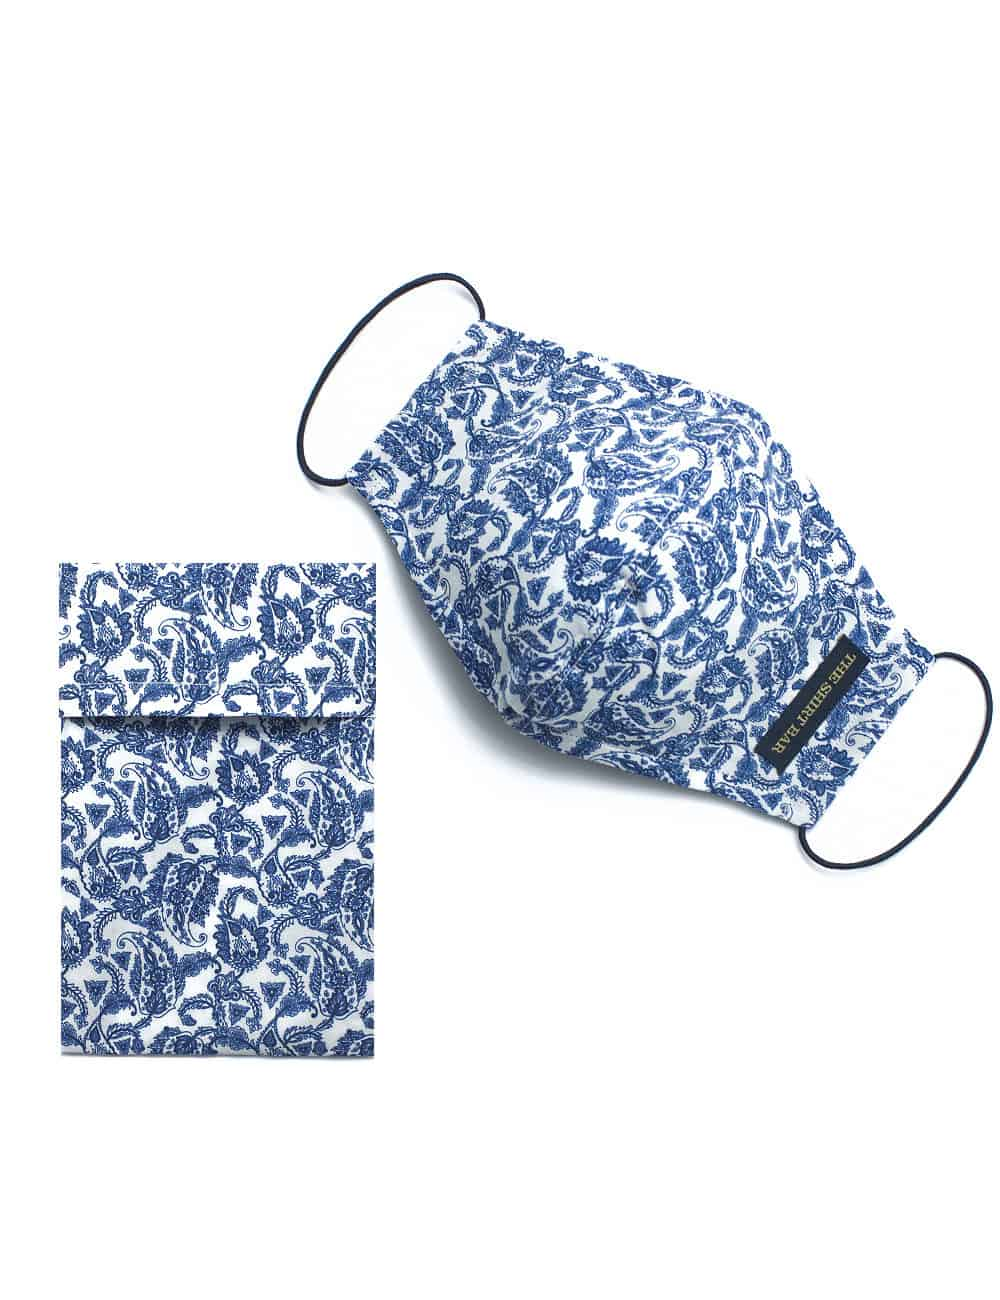 Blue Cultural SG Inspired Reusable Mask with Pouch - FM17.1